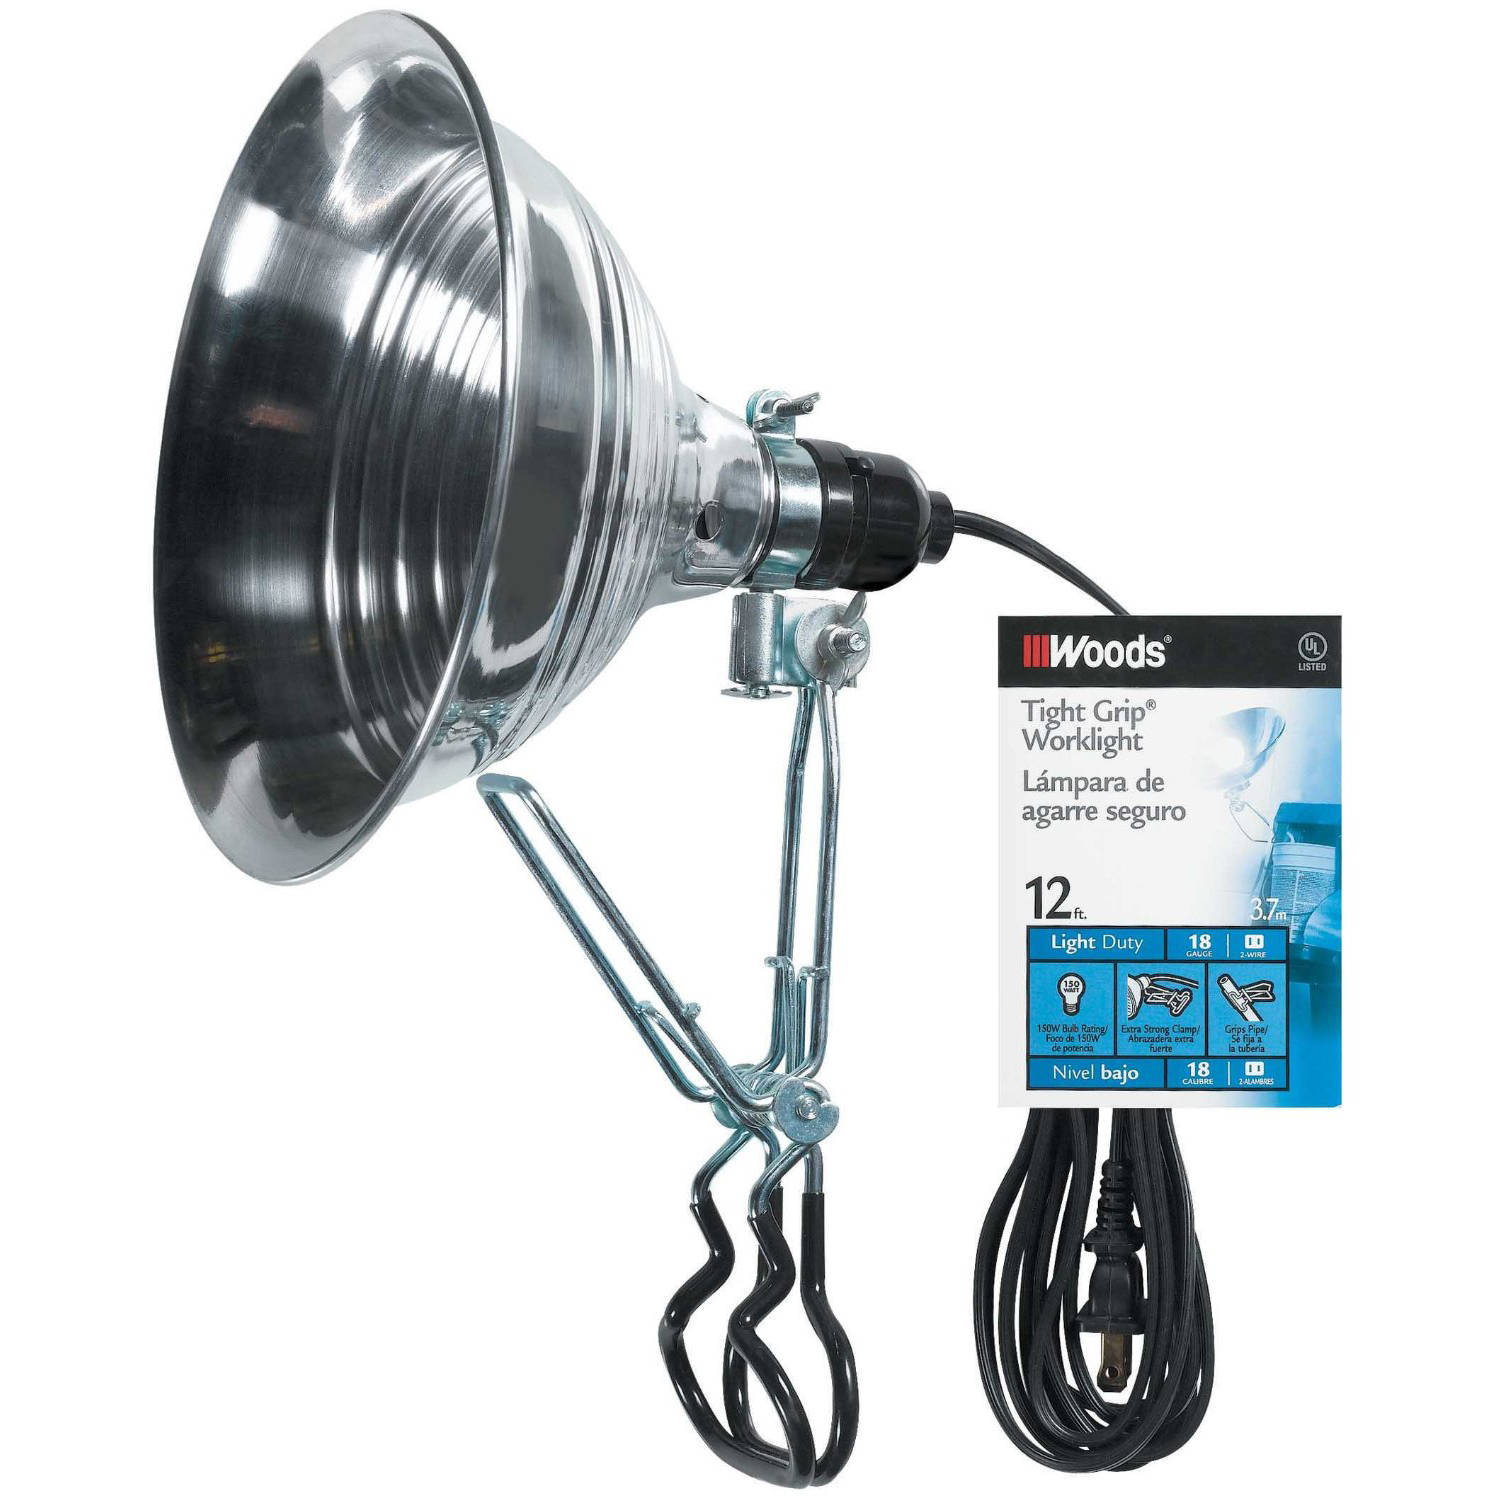 Woods 2839 18/2-Gauge SPT-2 Tight Grip Clamp Lamp with Reflector, 150-Watt, 8.5-Inches, 12-Foot